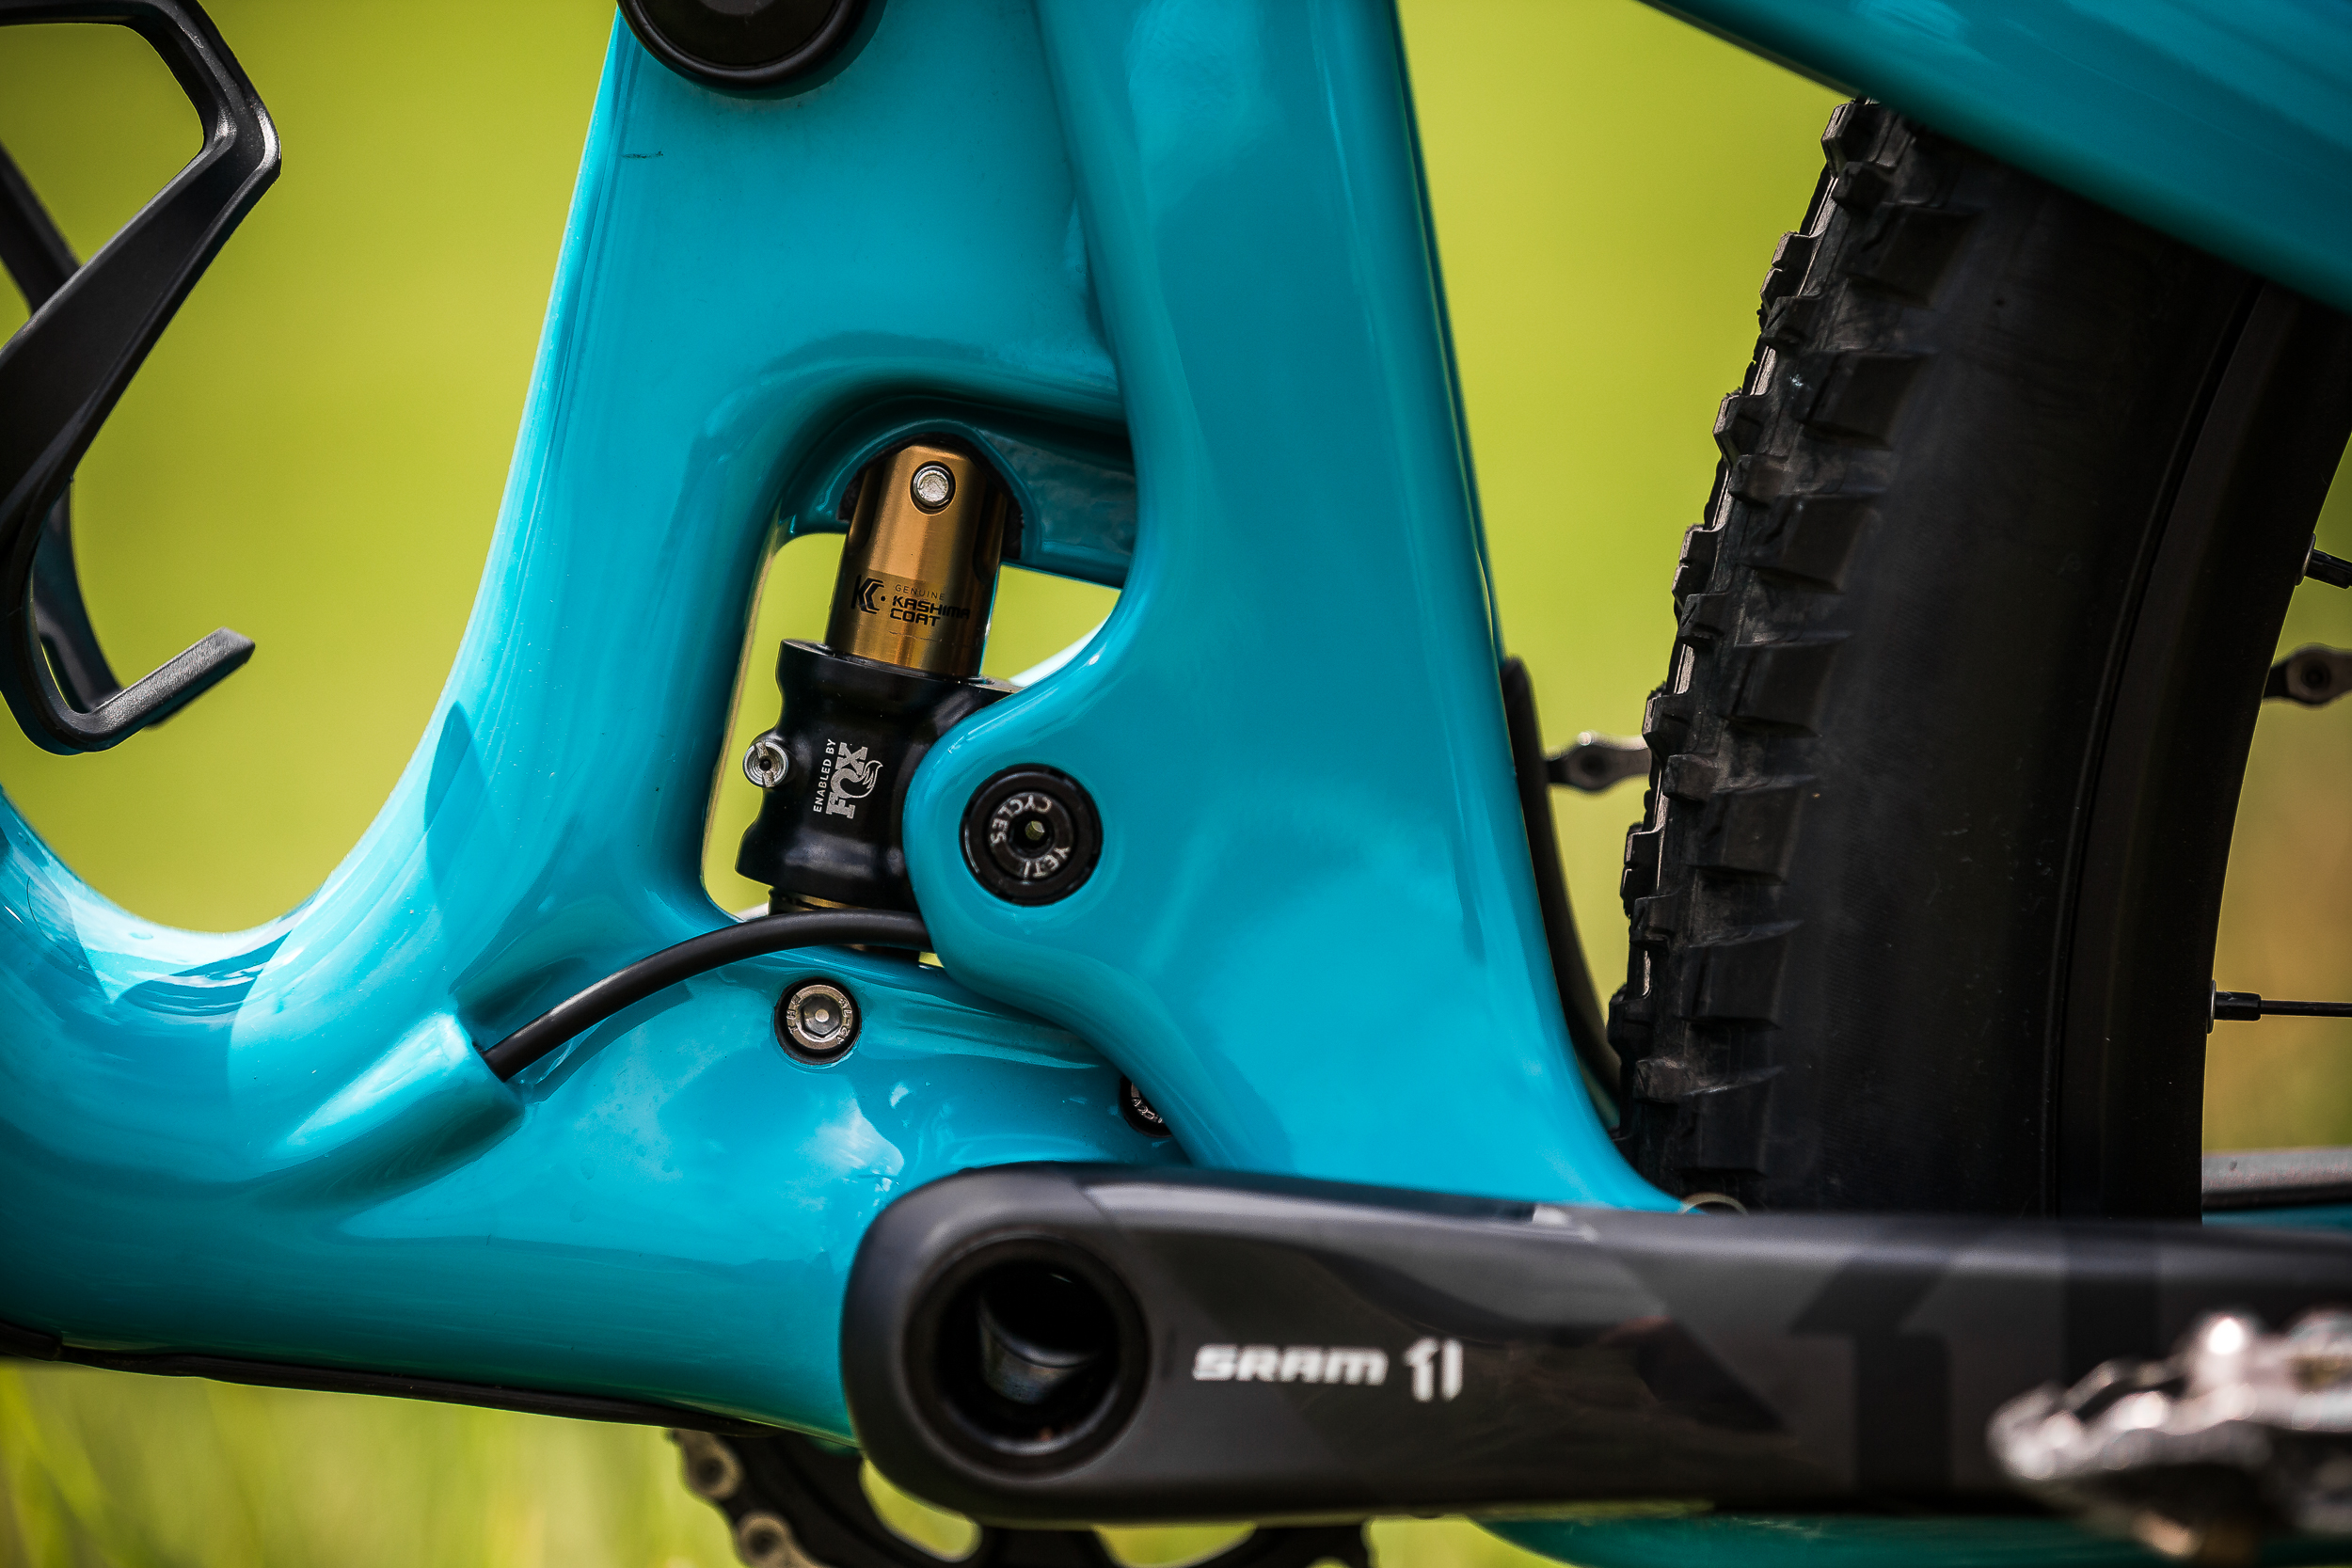 The Switch Infinity suspension system allows Yeti to tune the suspension characteristics to its liking.